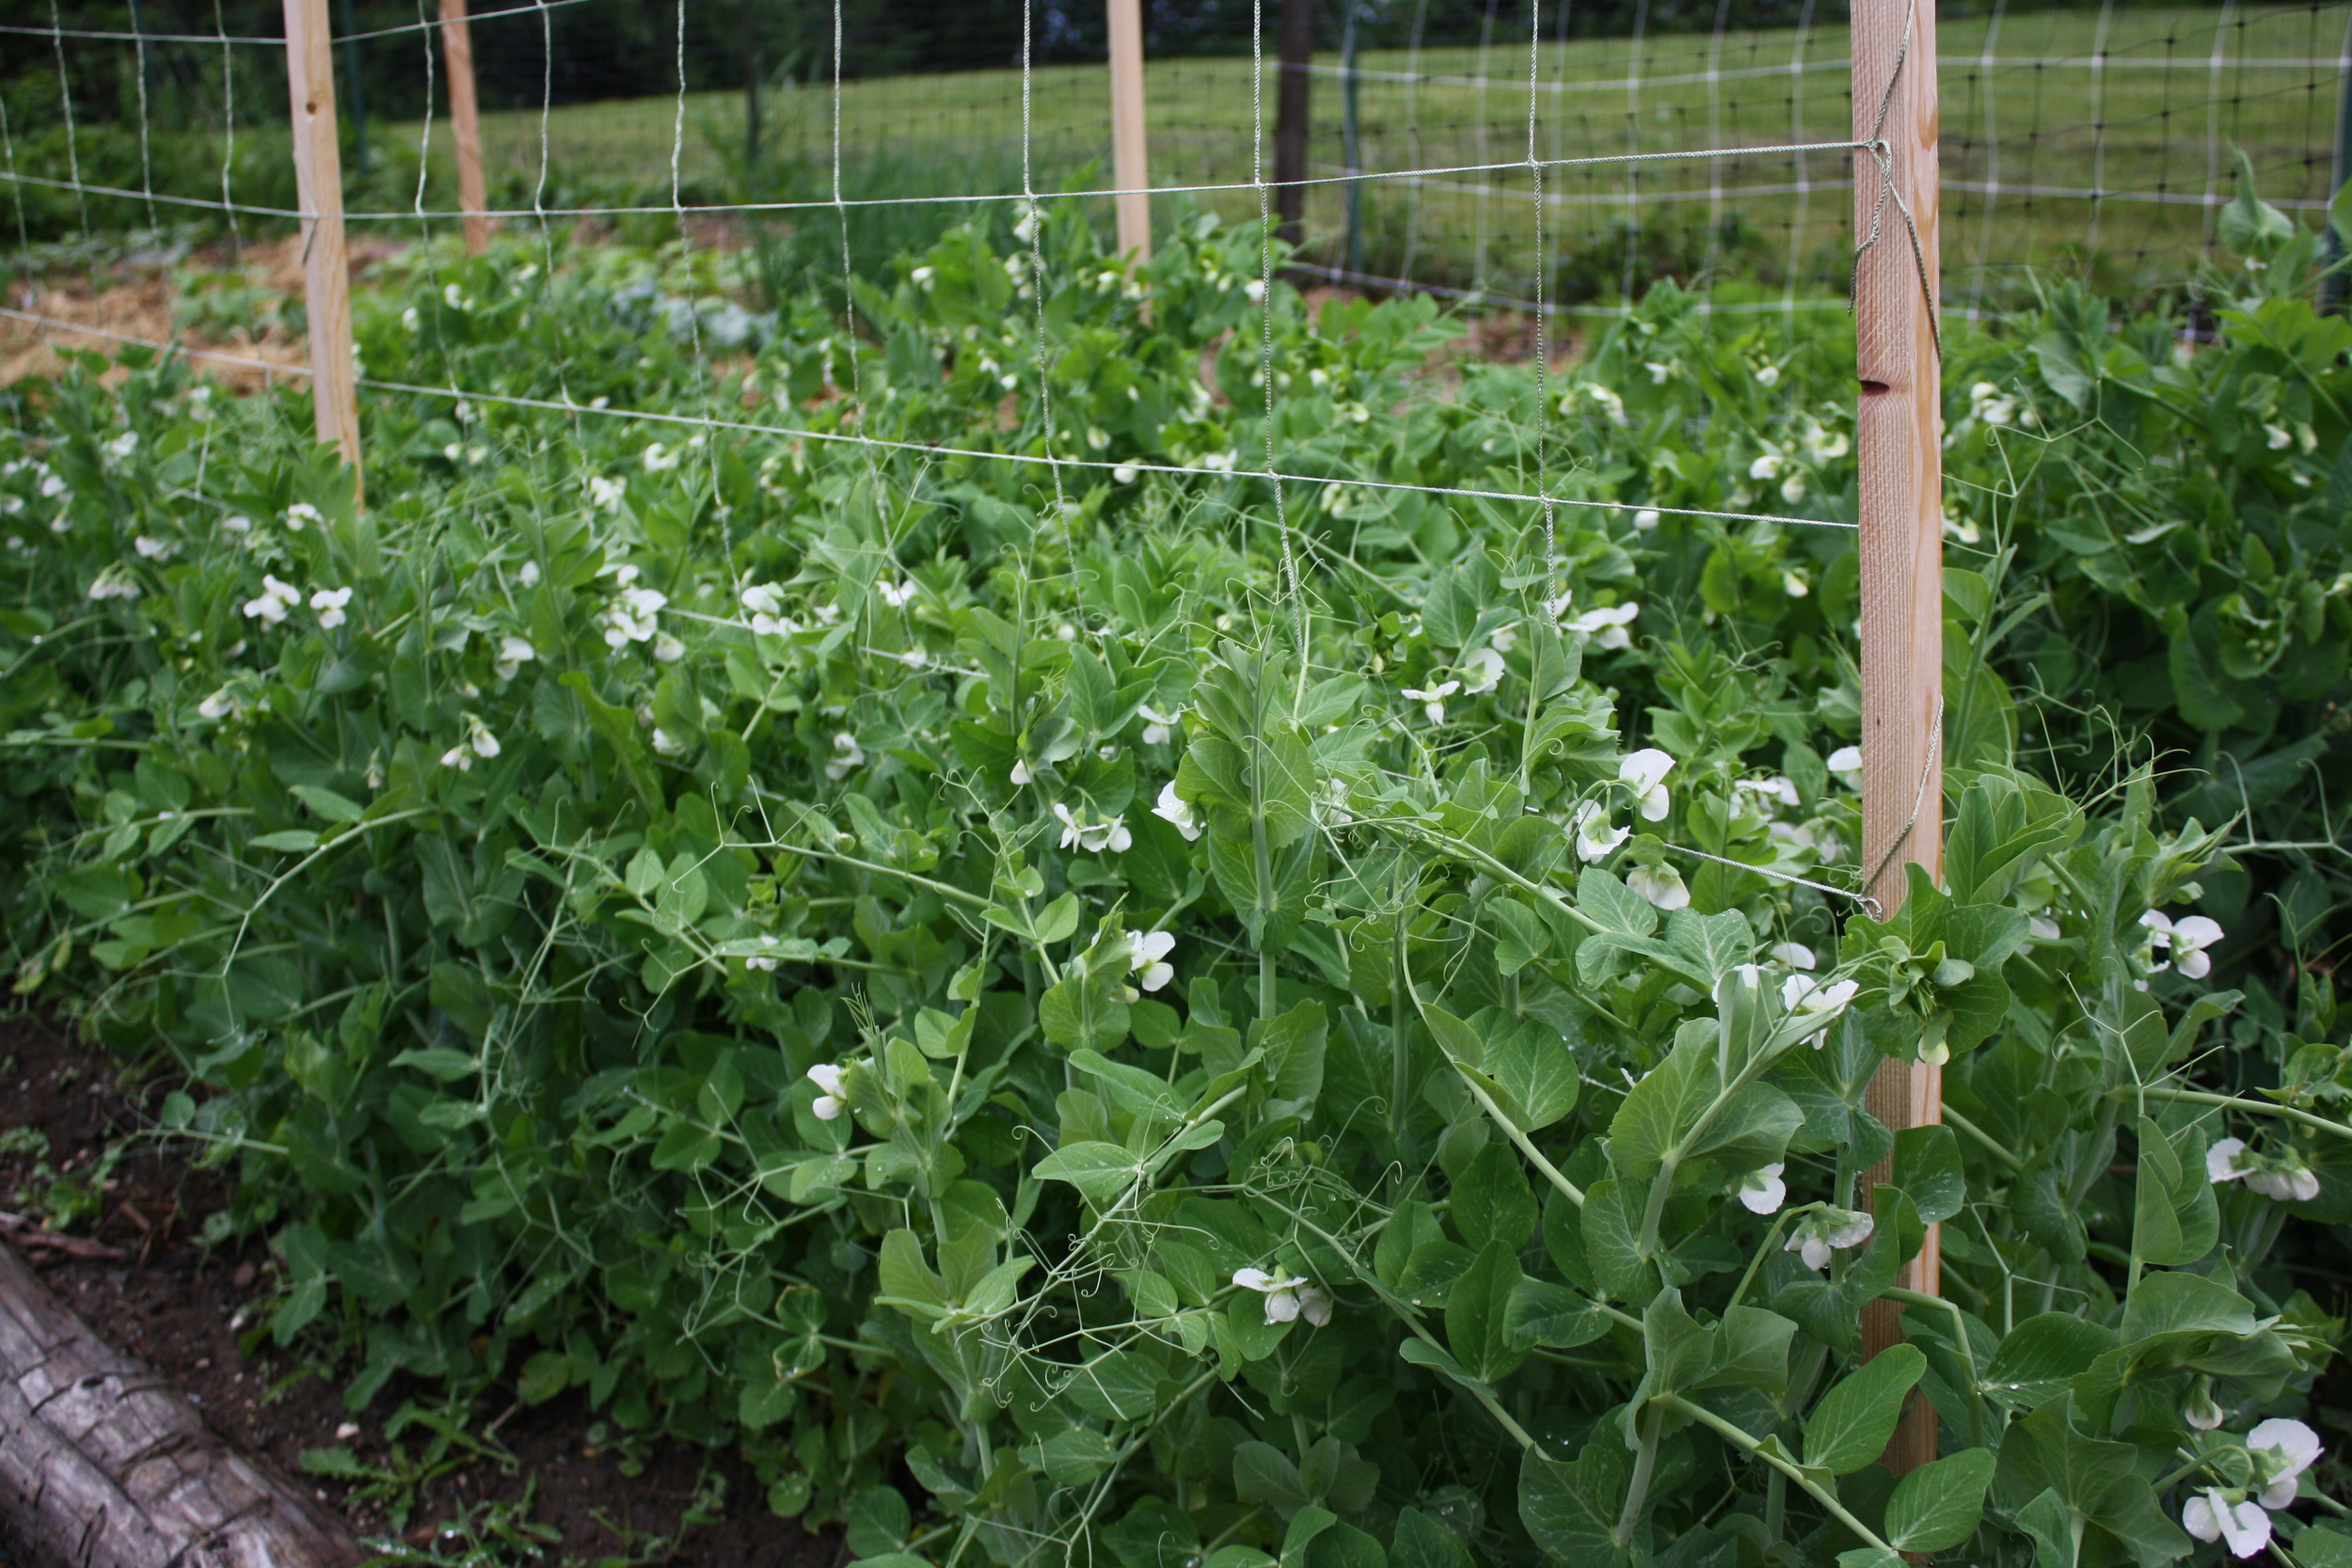 'Lincoln' and 'Petit Pois' shell peas blooming